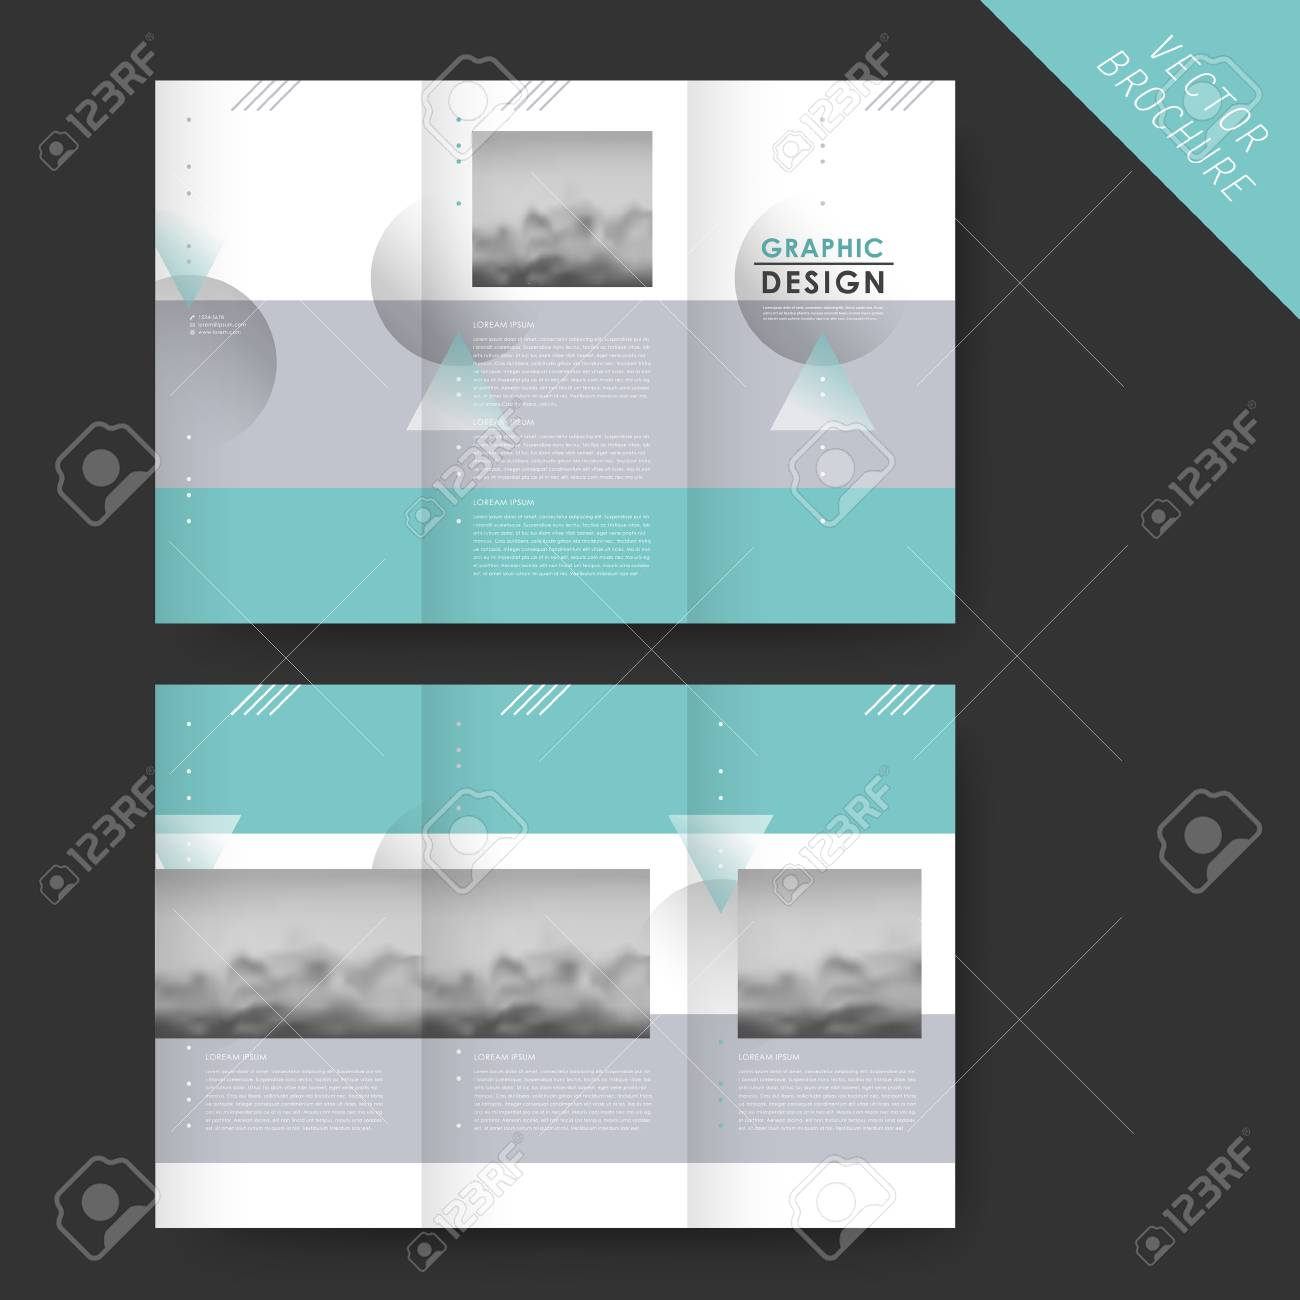 Elegant Tri Fold Template Design With Geometric Elements And